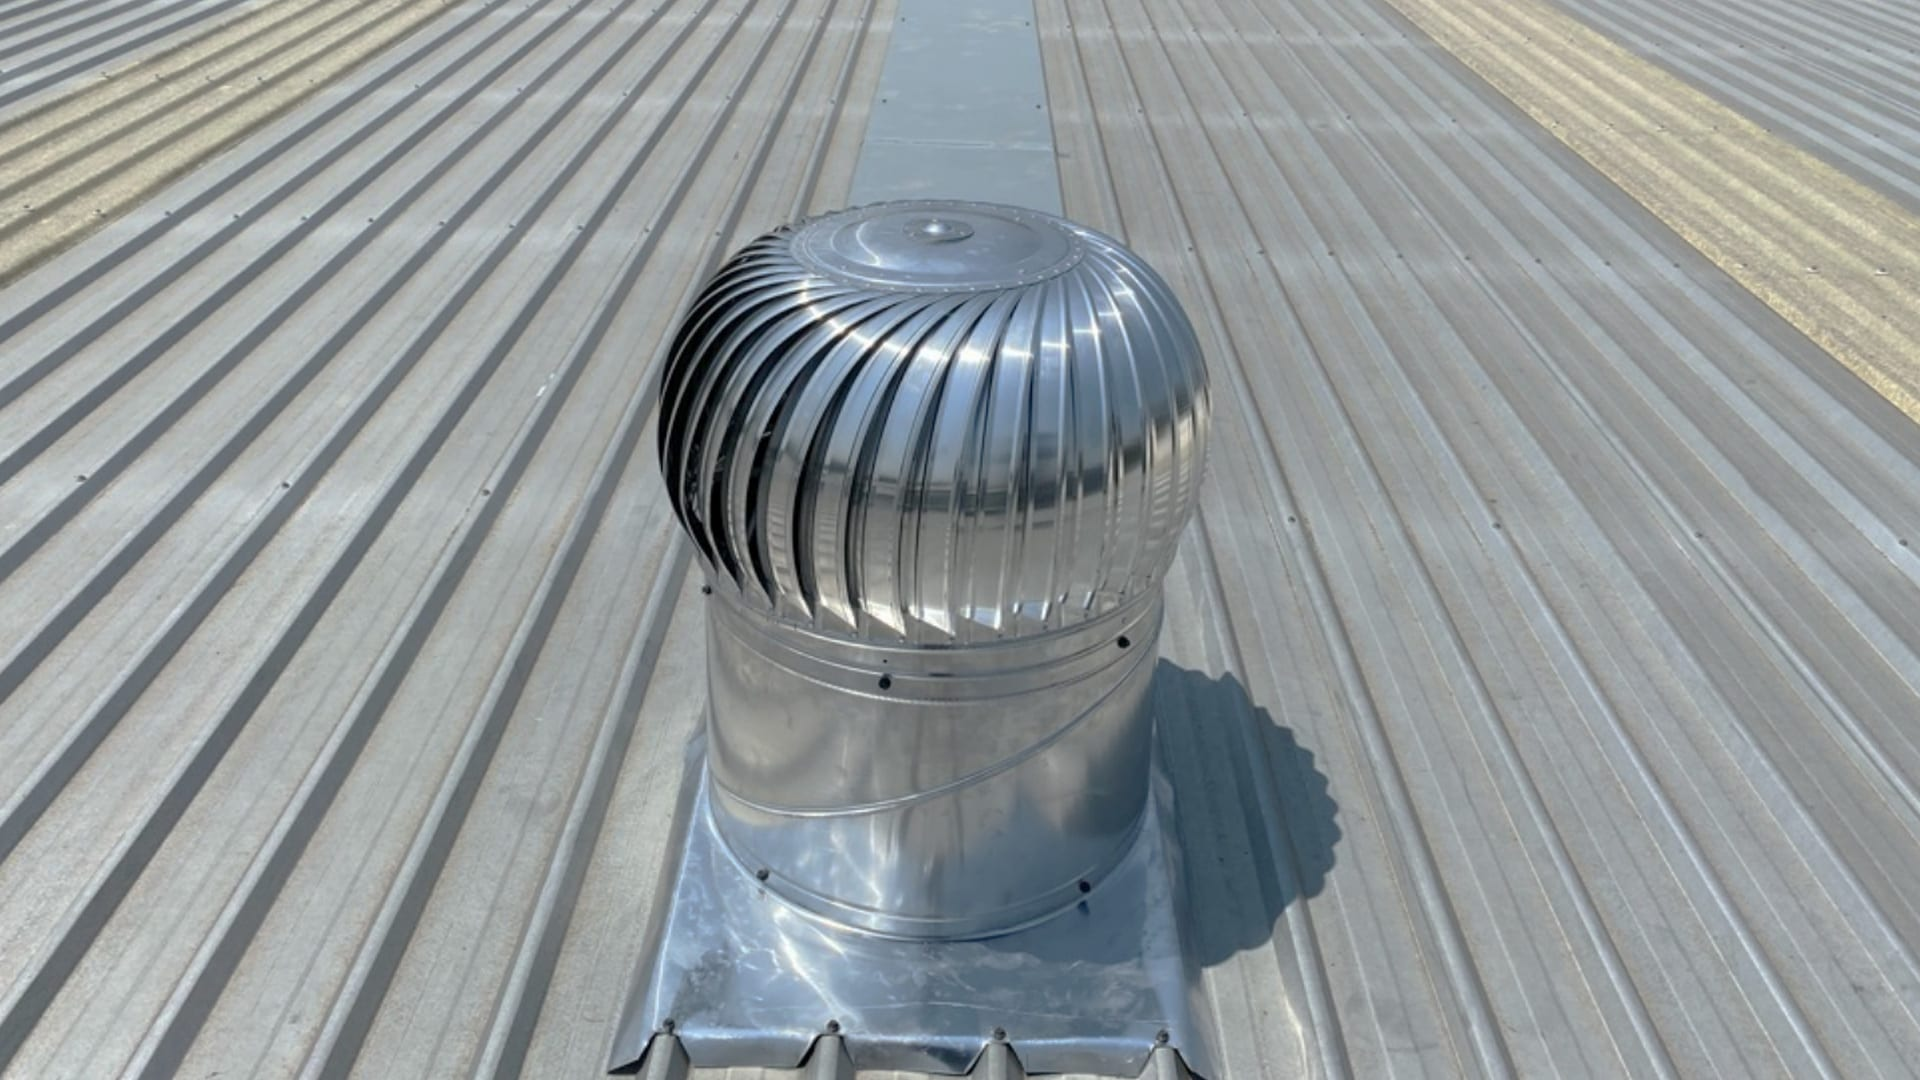 Commercial Whirlybird Roof Vents Sydney